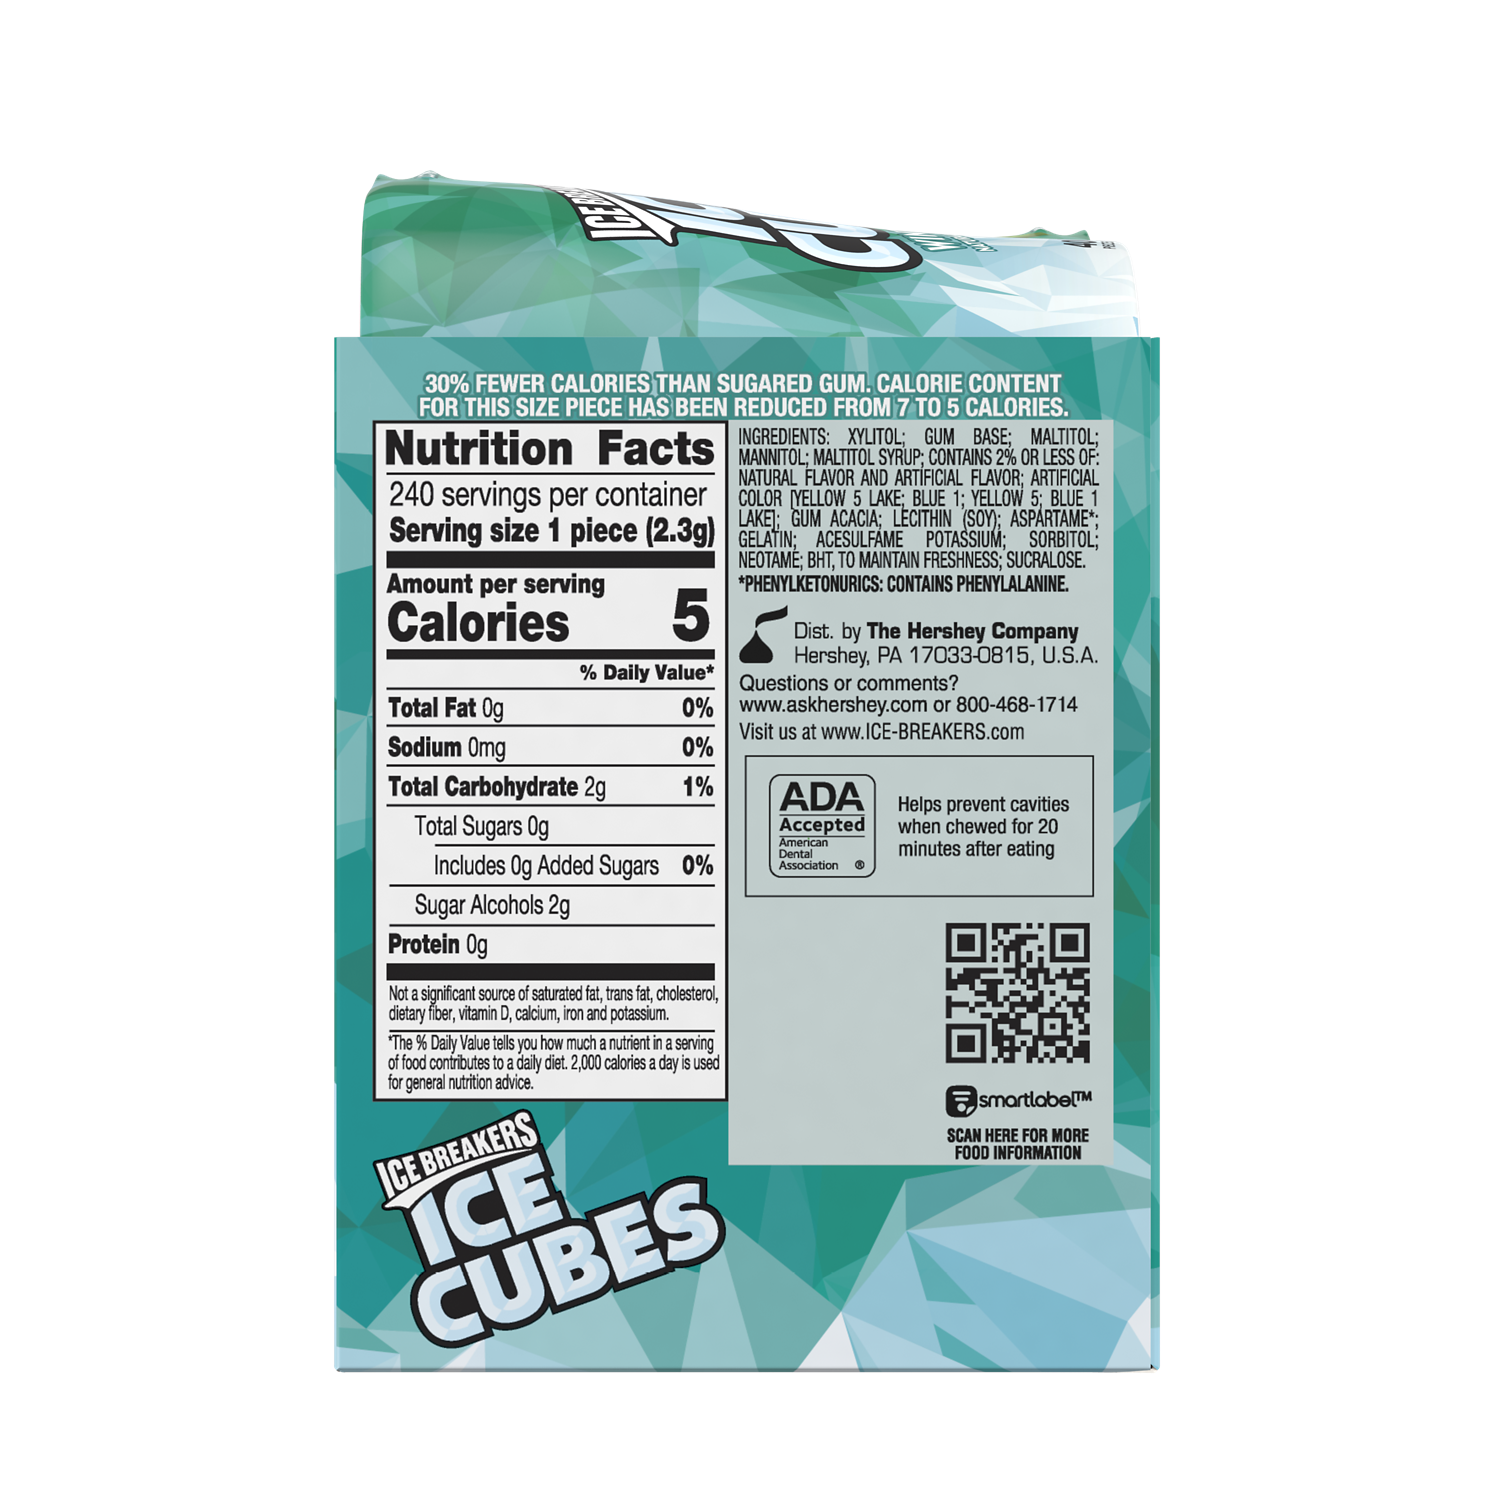 ICE BREAKERS ICE CUBES Wintergreen Sugar Free Gum, 19.44 oz box, 6 pack - Back of Package